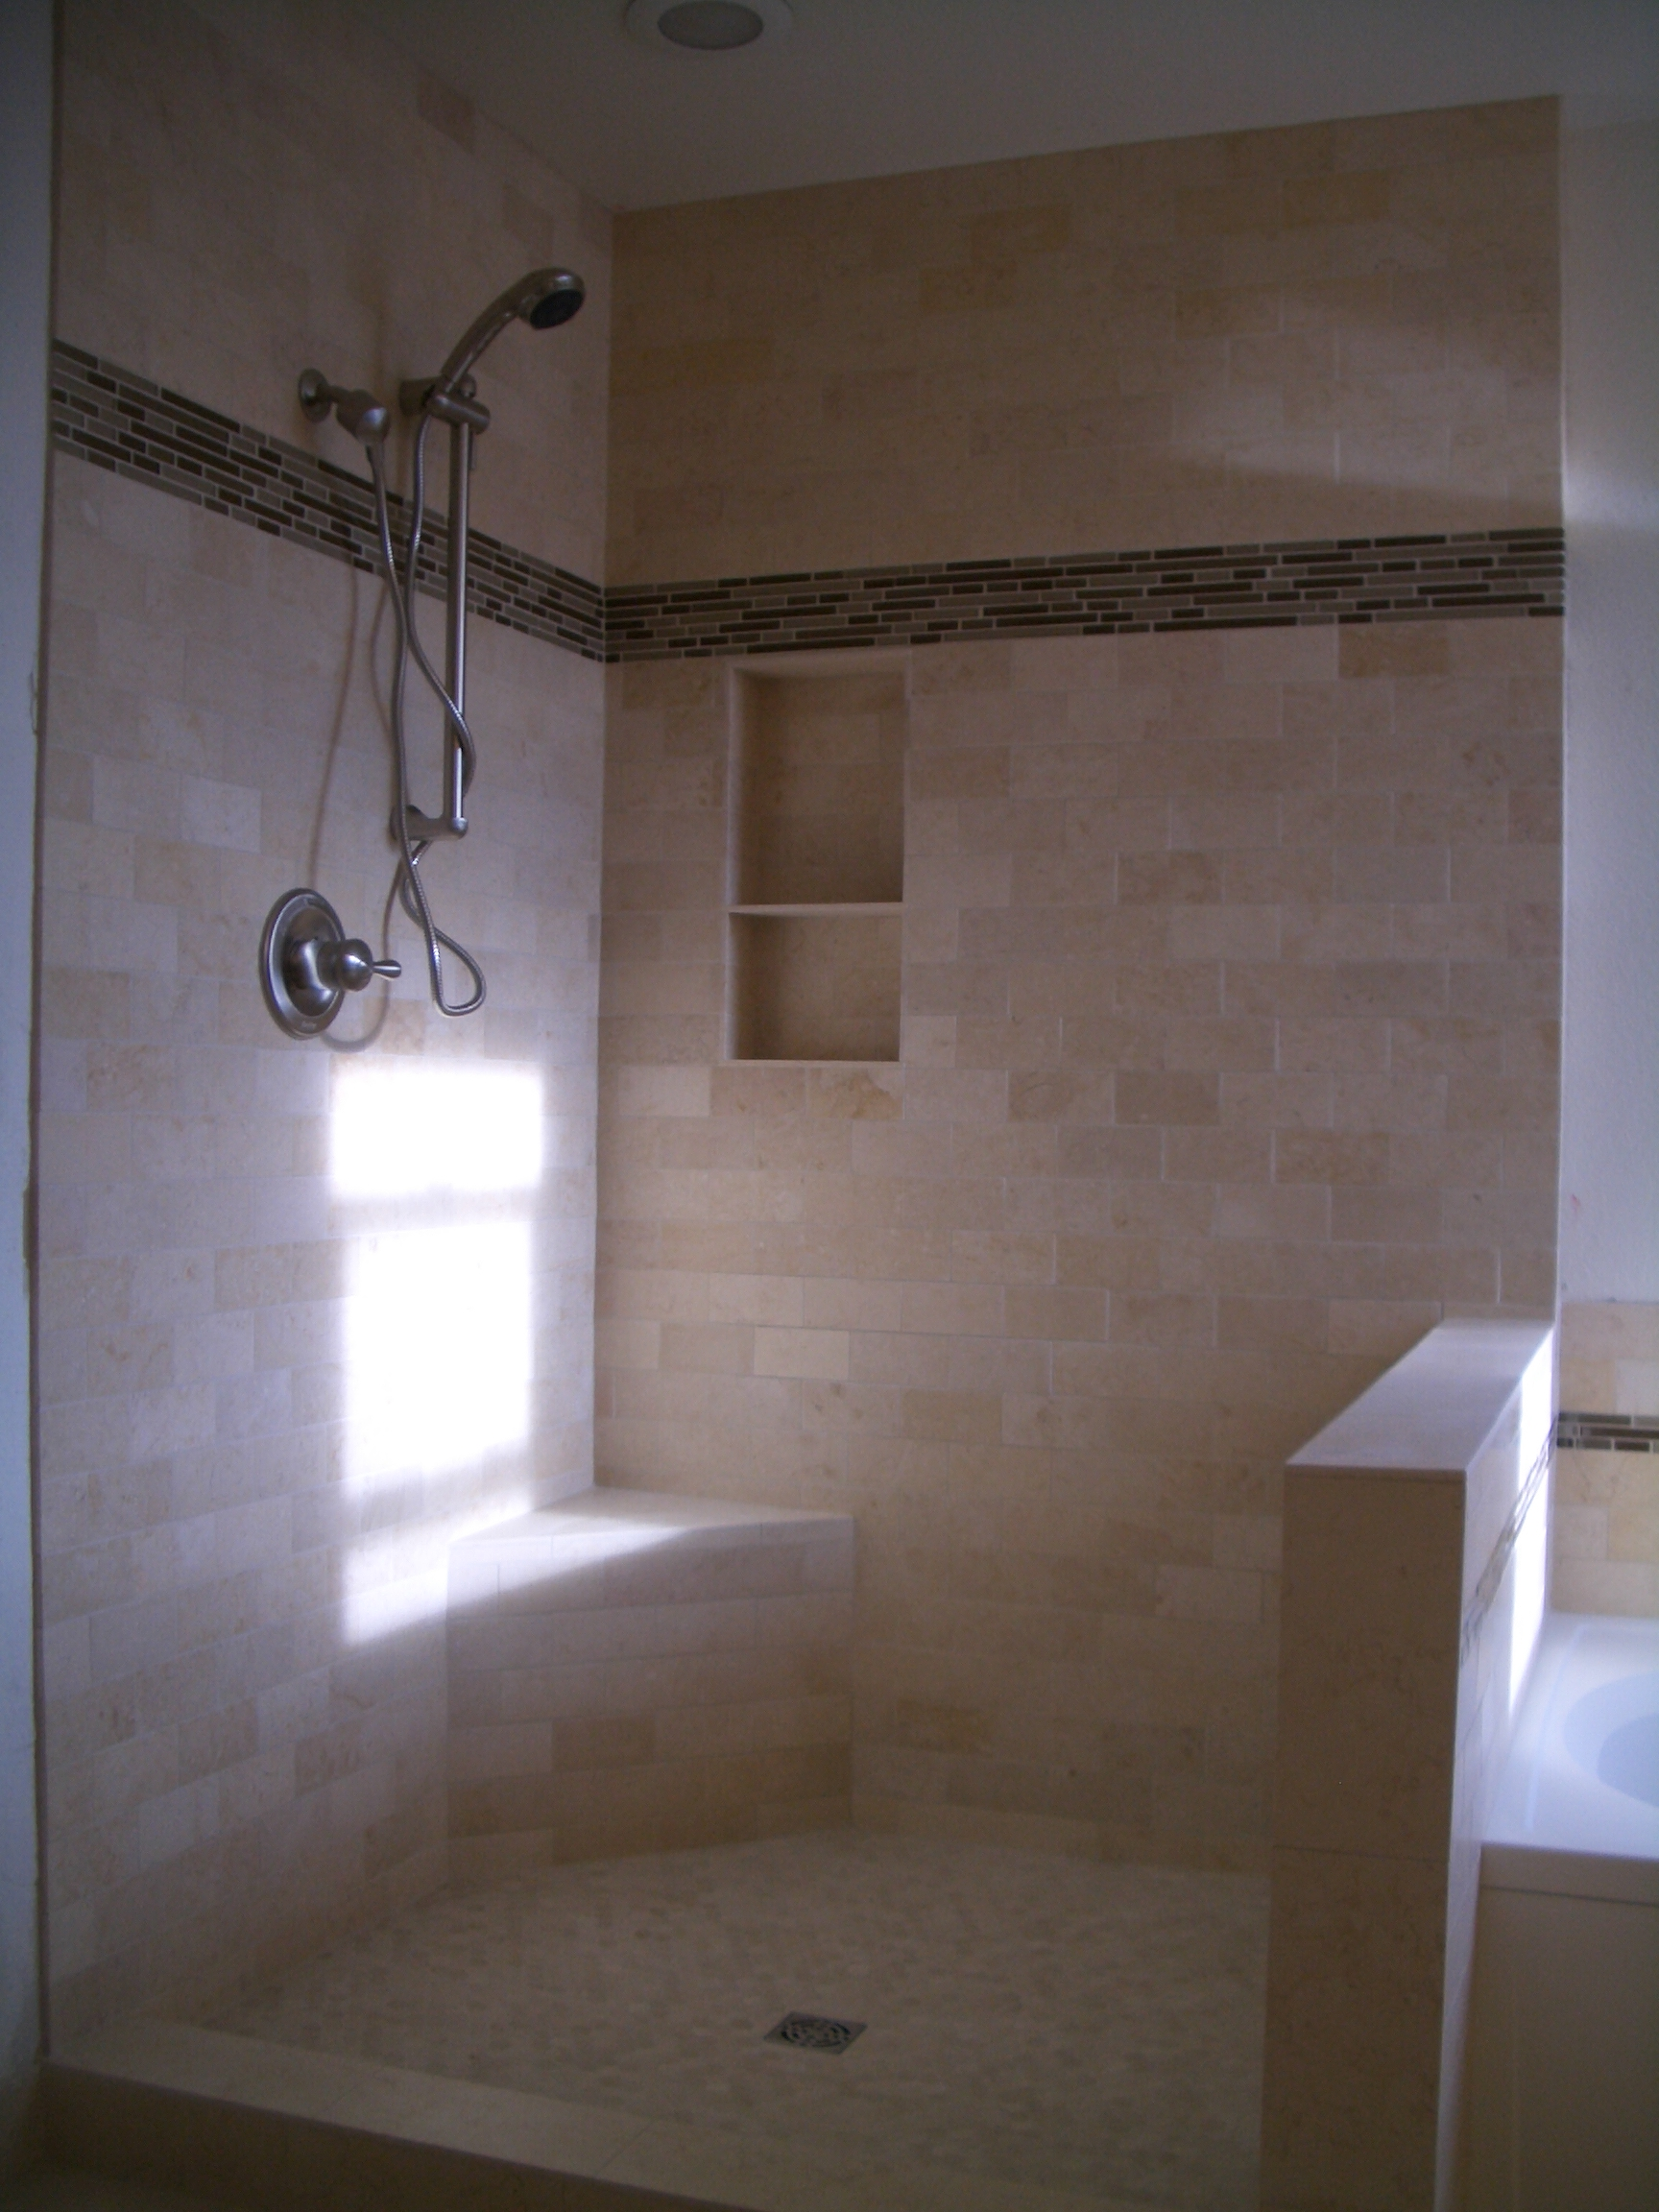 How to Build a Niche for your Shower – Part 1